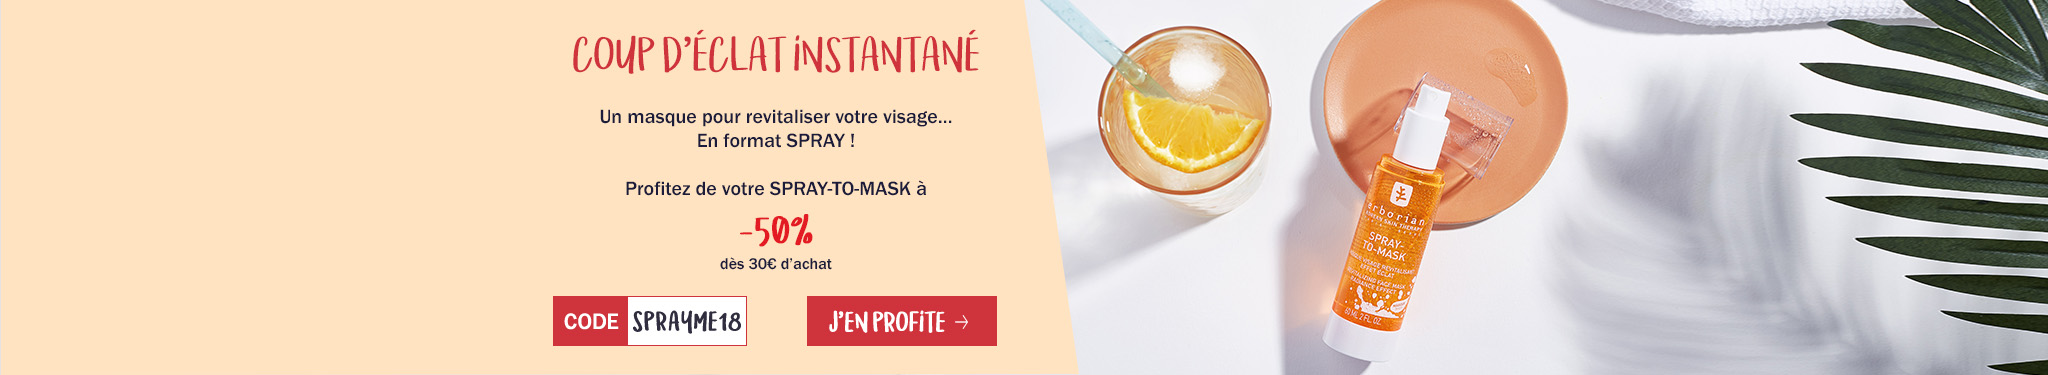 Le SPRAY-TO-MASK à -50% !